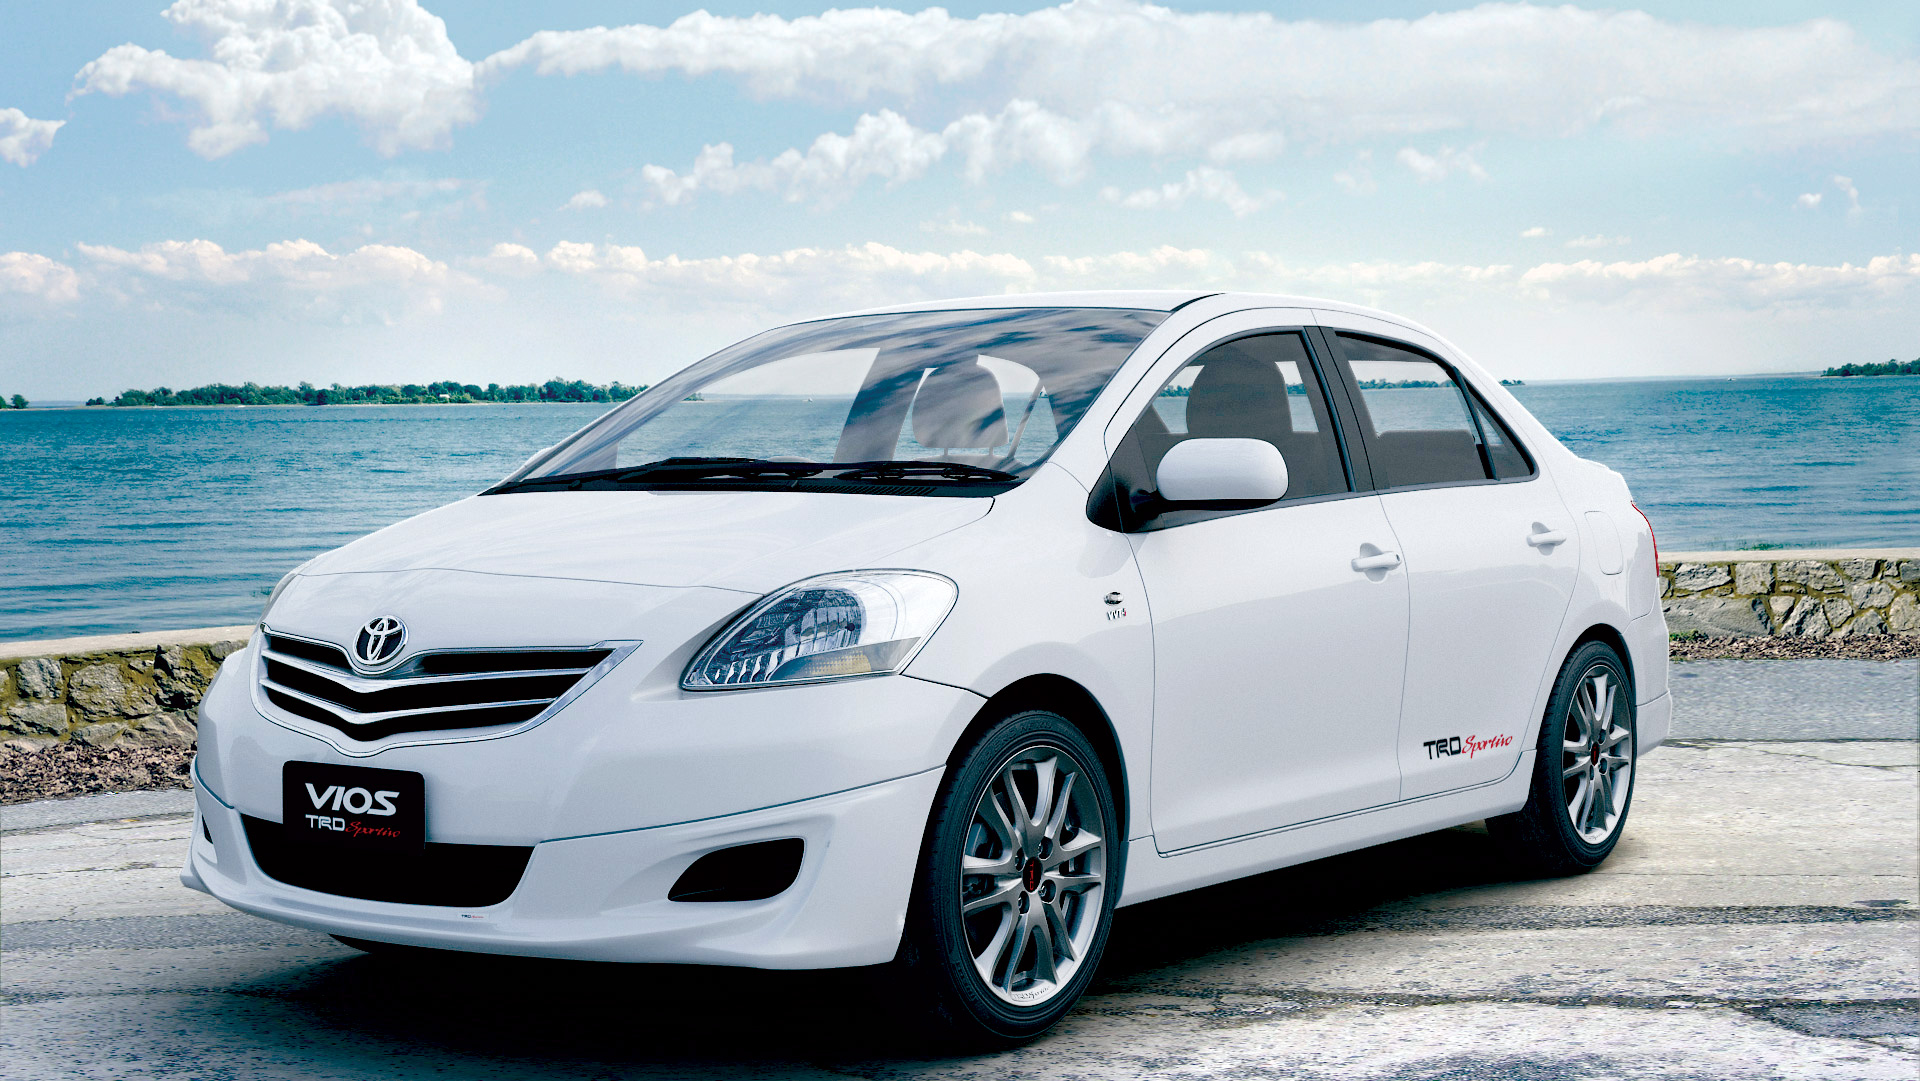 vios-in-large-1508376933